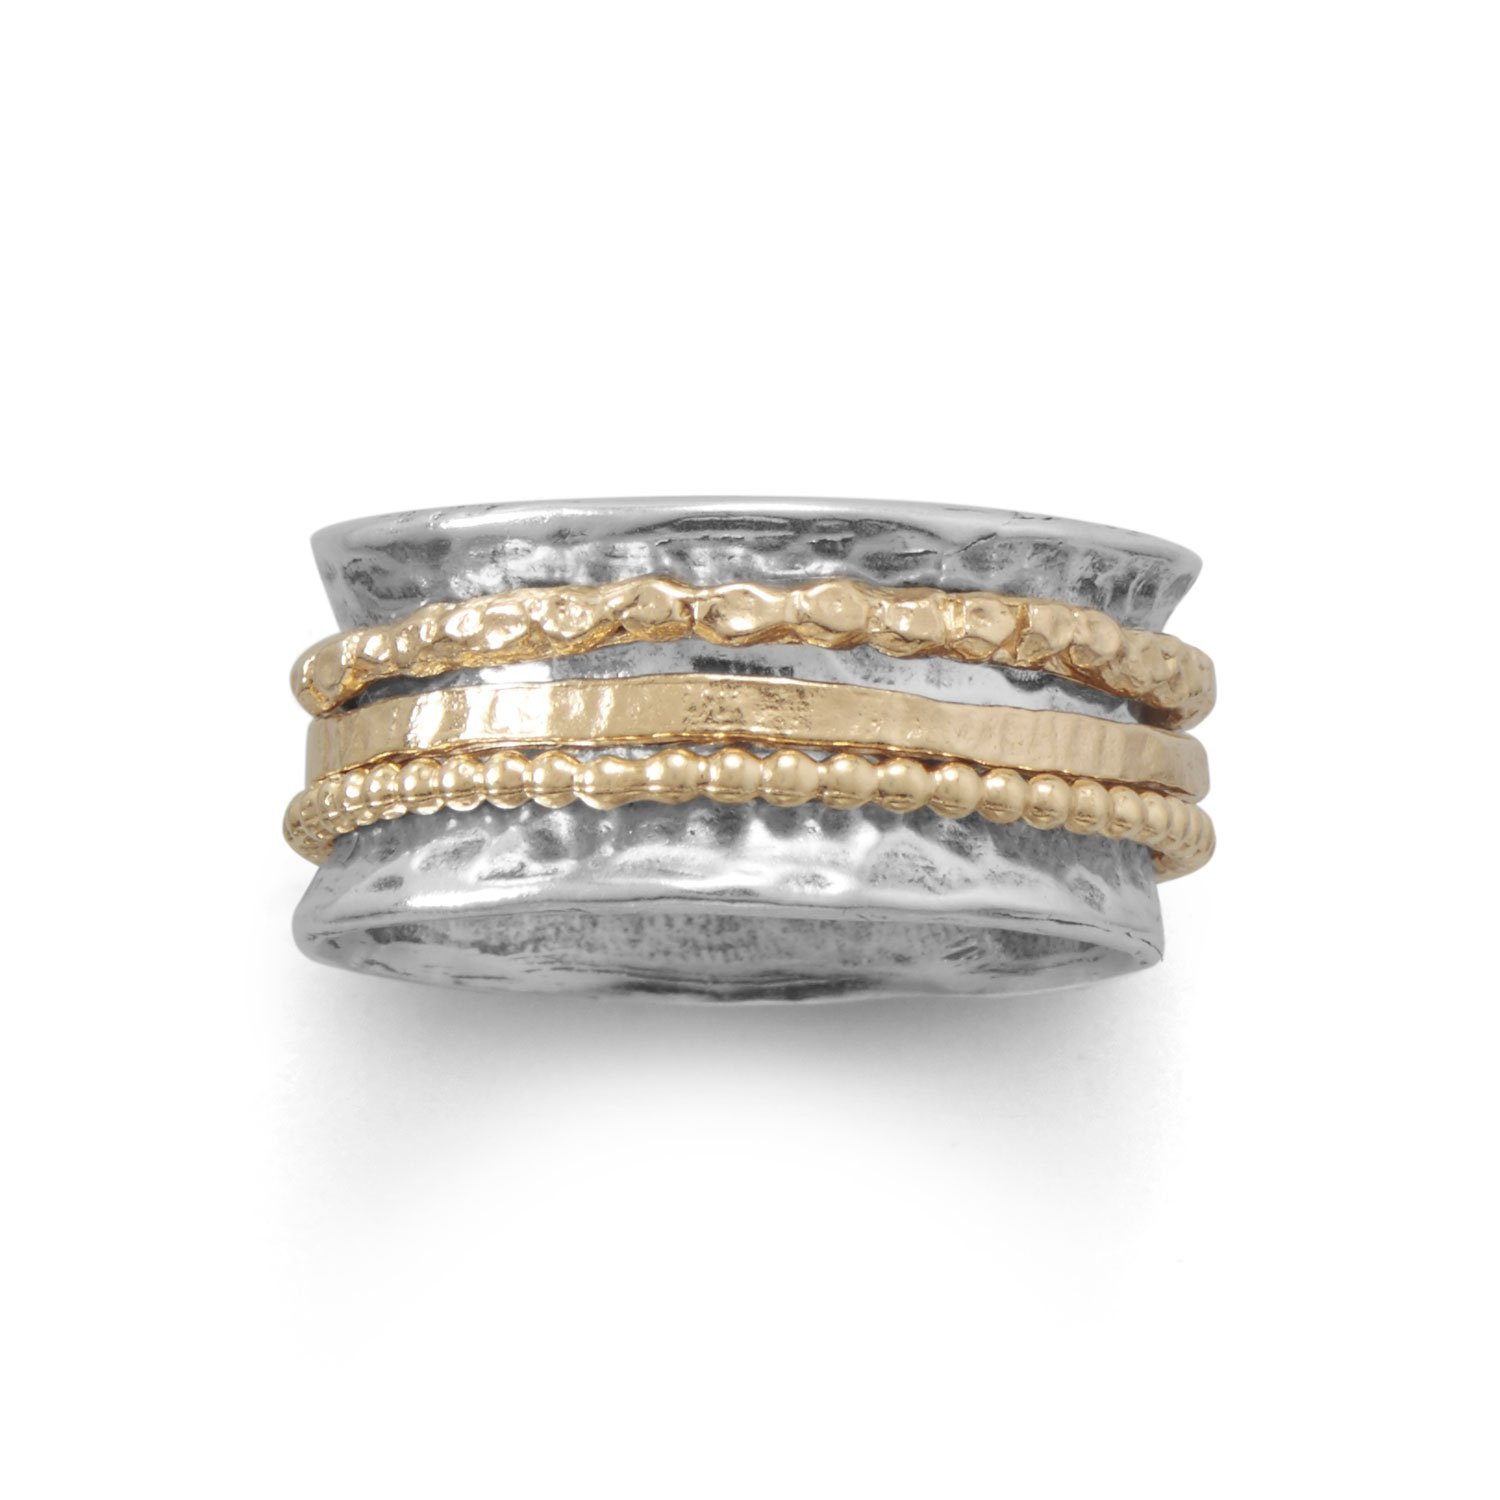 Spin Ring with Three Gold Spinning Bands Hammered Antiqued Sterling Silver, 6